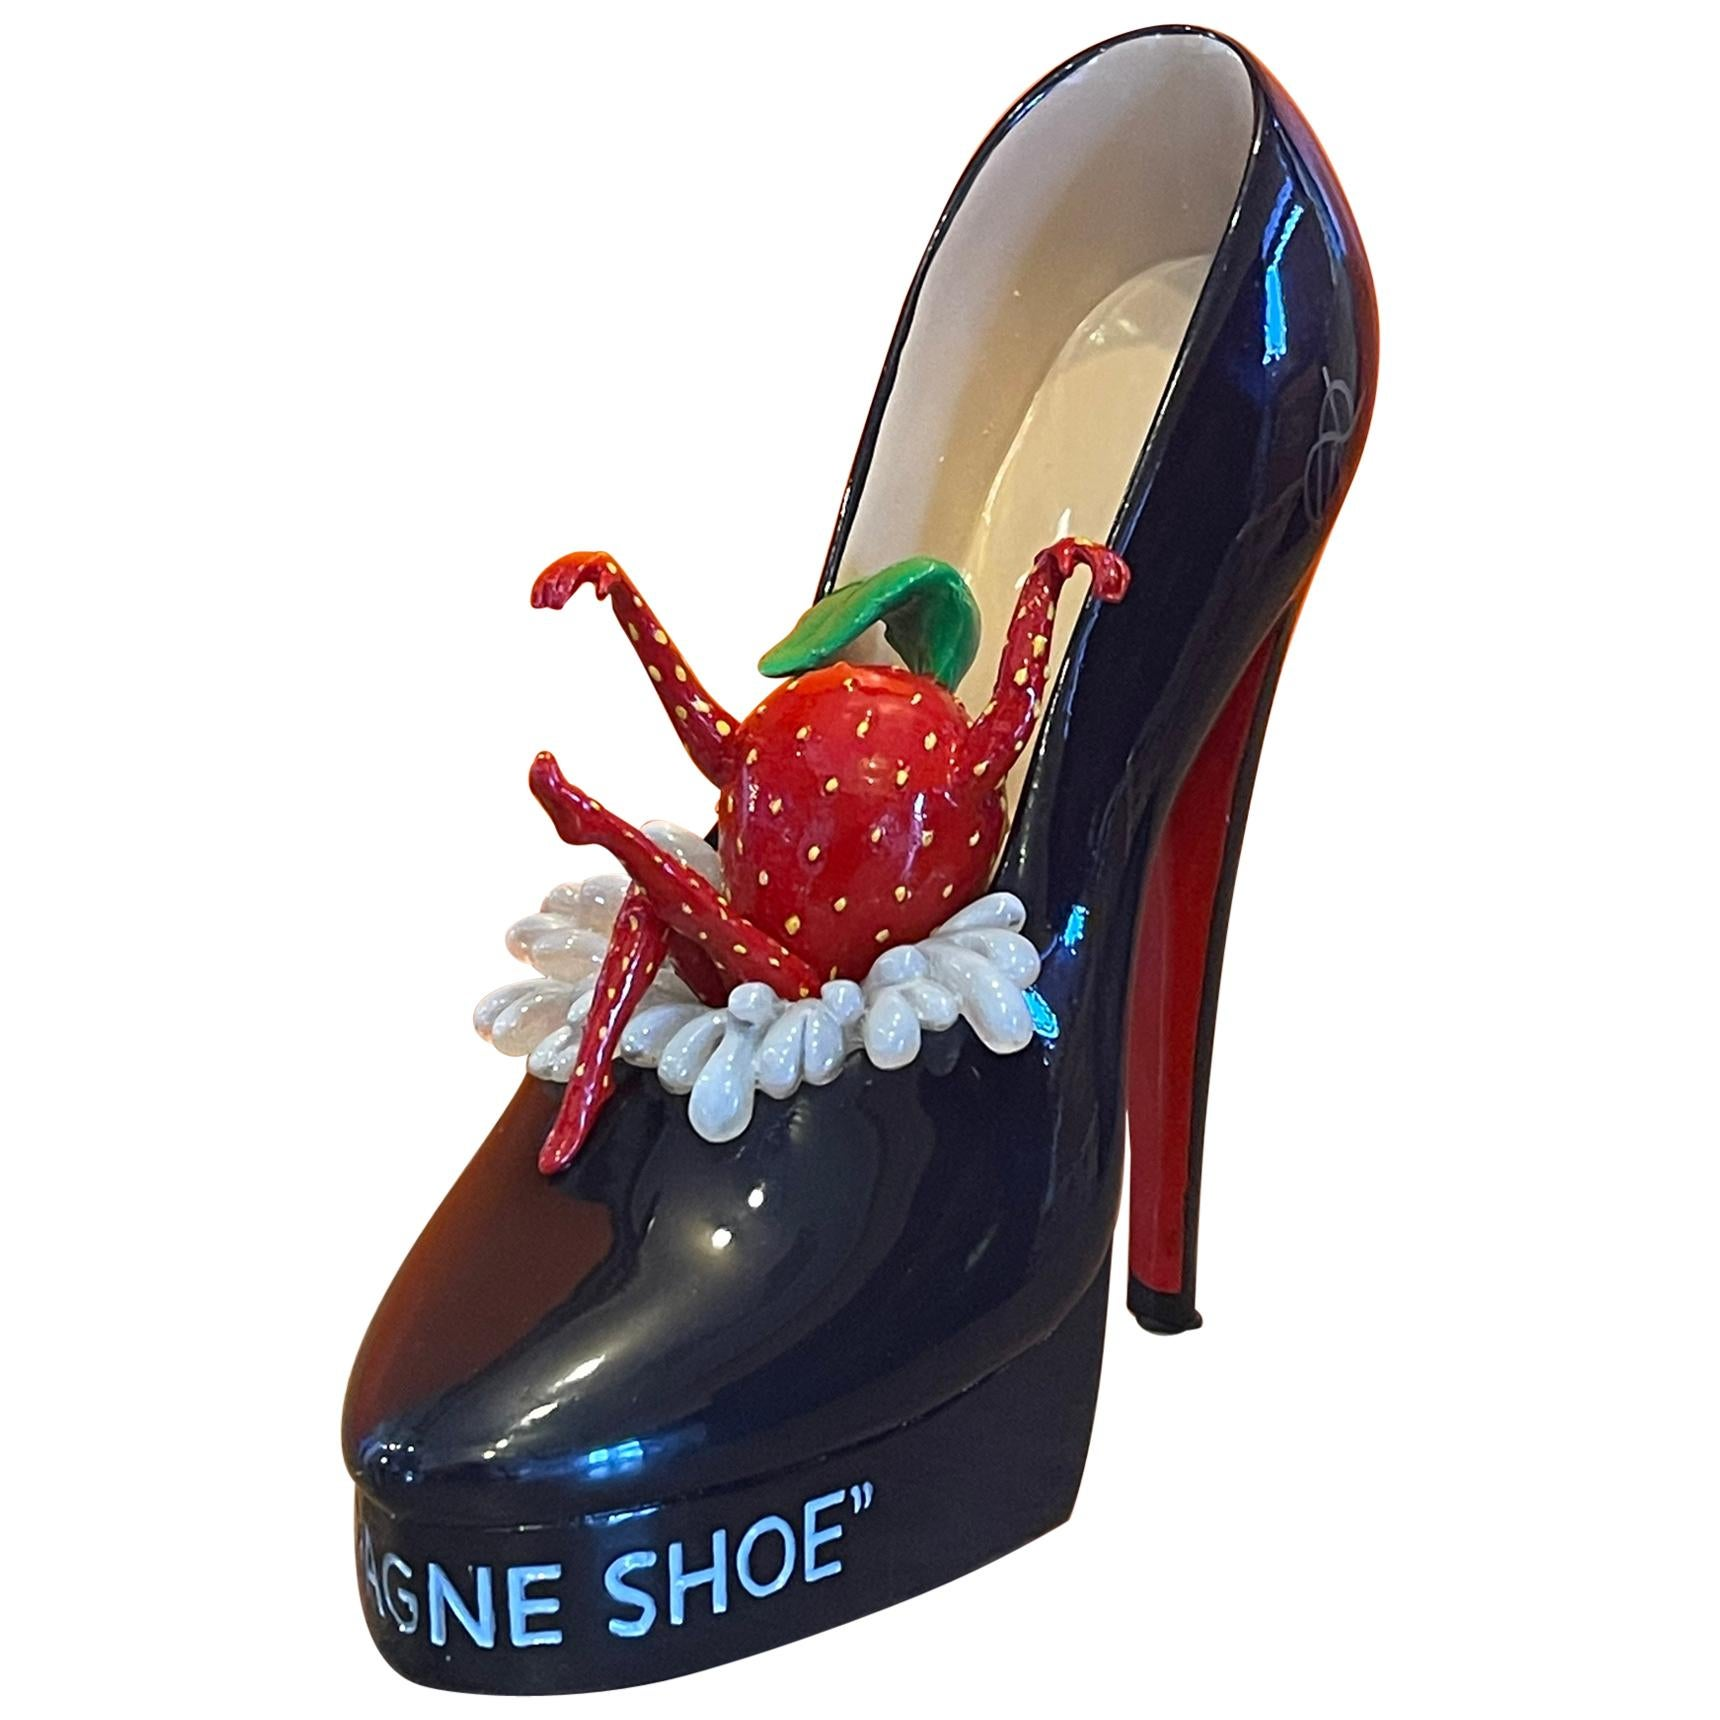 """""""Champagne Shoe"""" Signed Limited Edition Resin Sculpture by Michael Godard"""